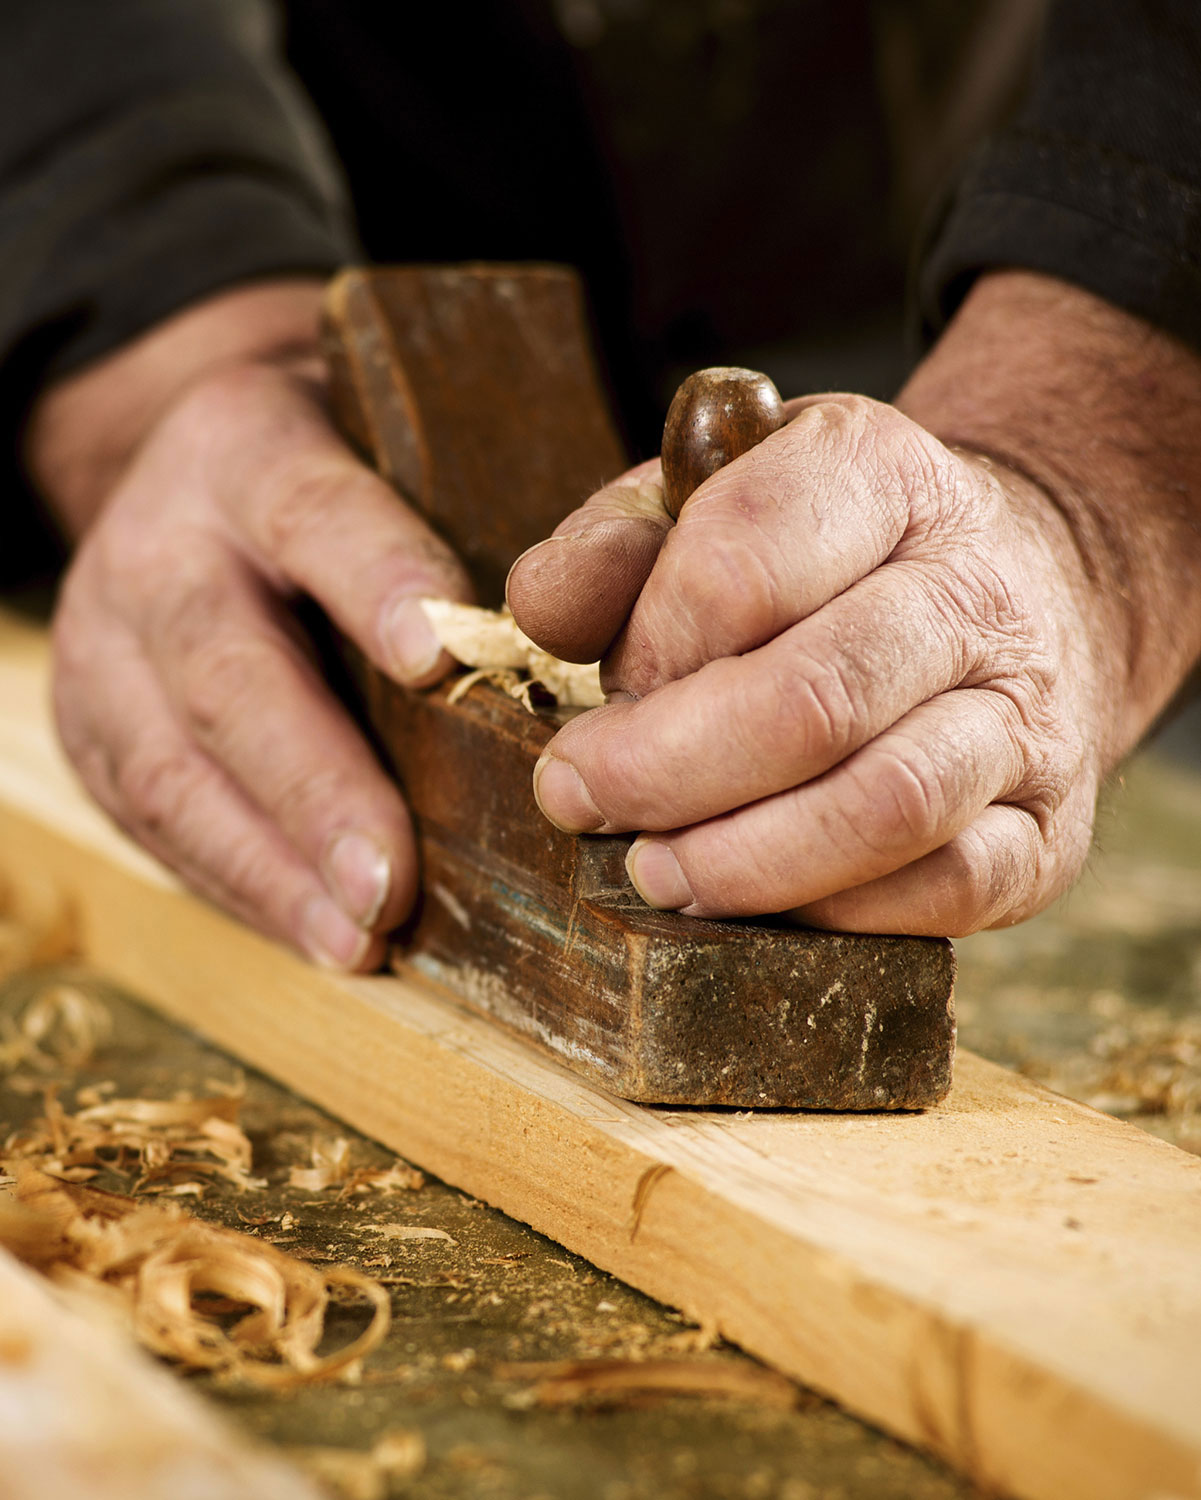 How To Repaier Woodcraft